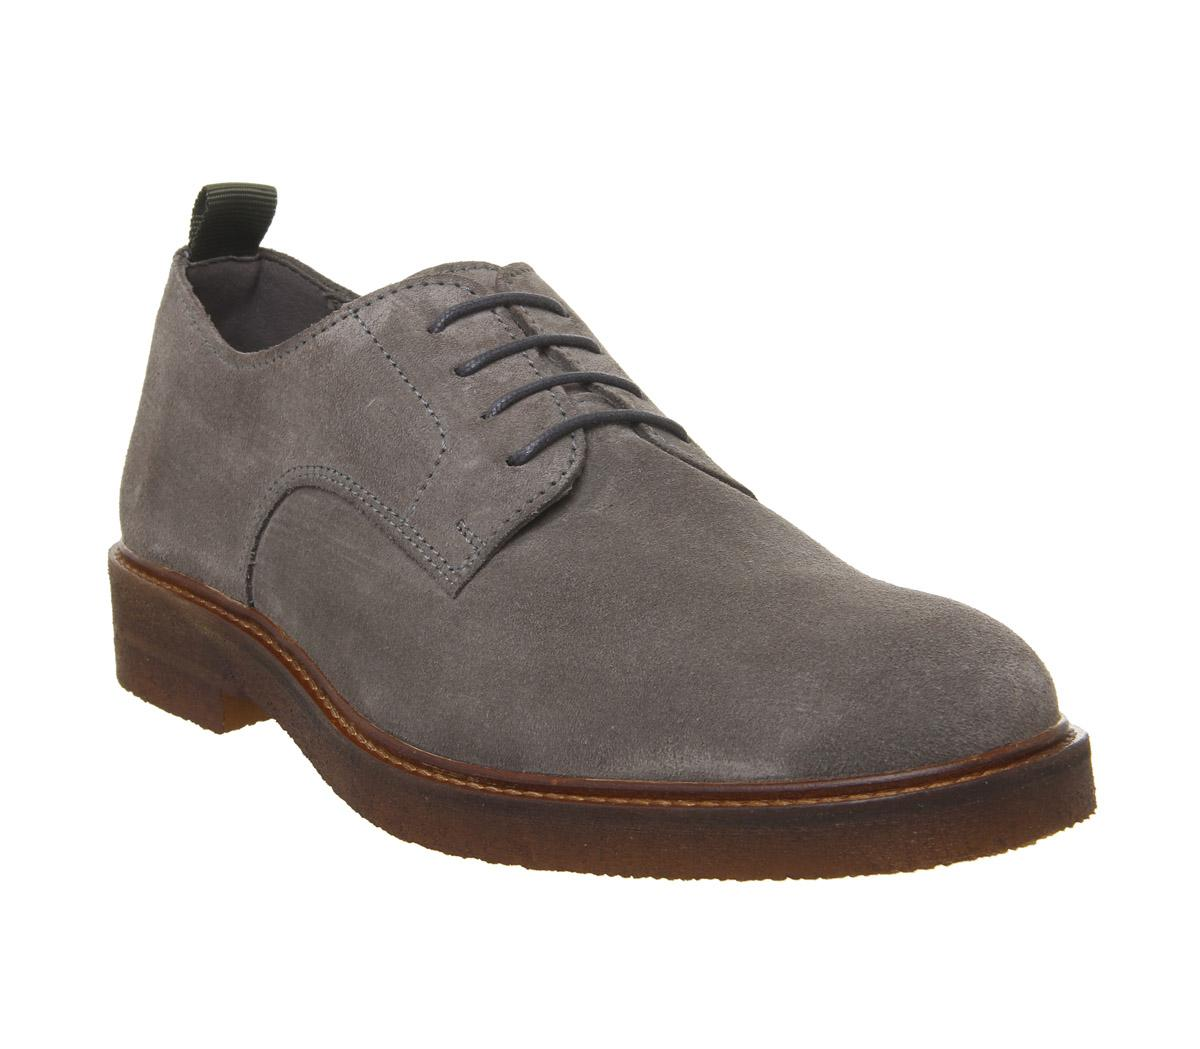 Locked Derby Shoes